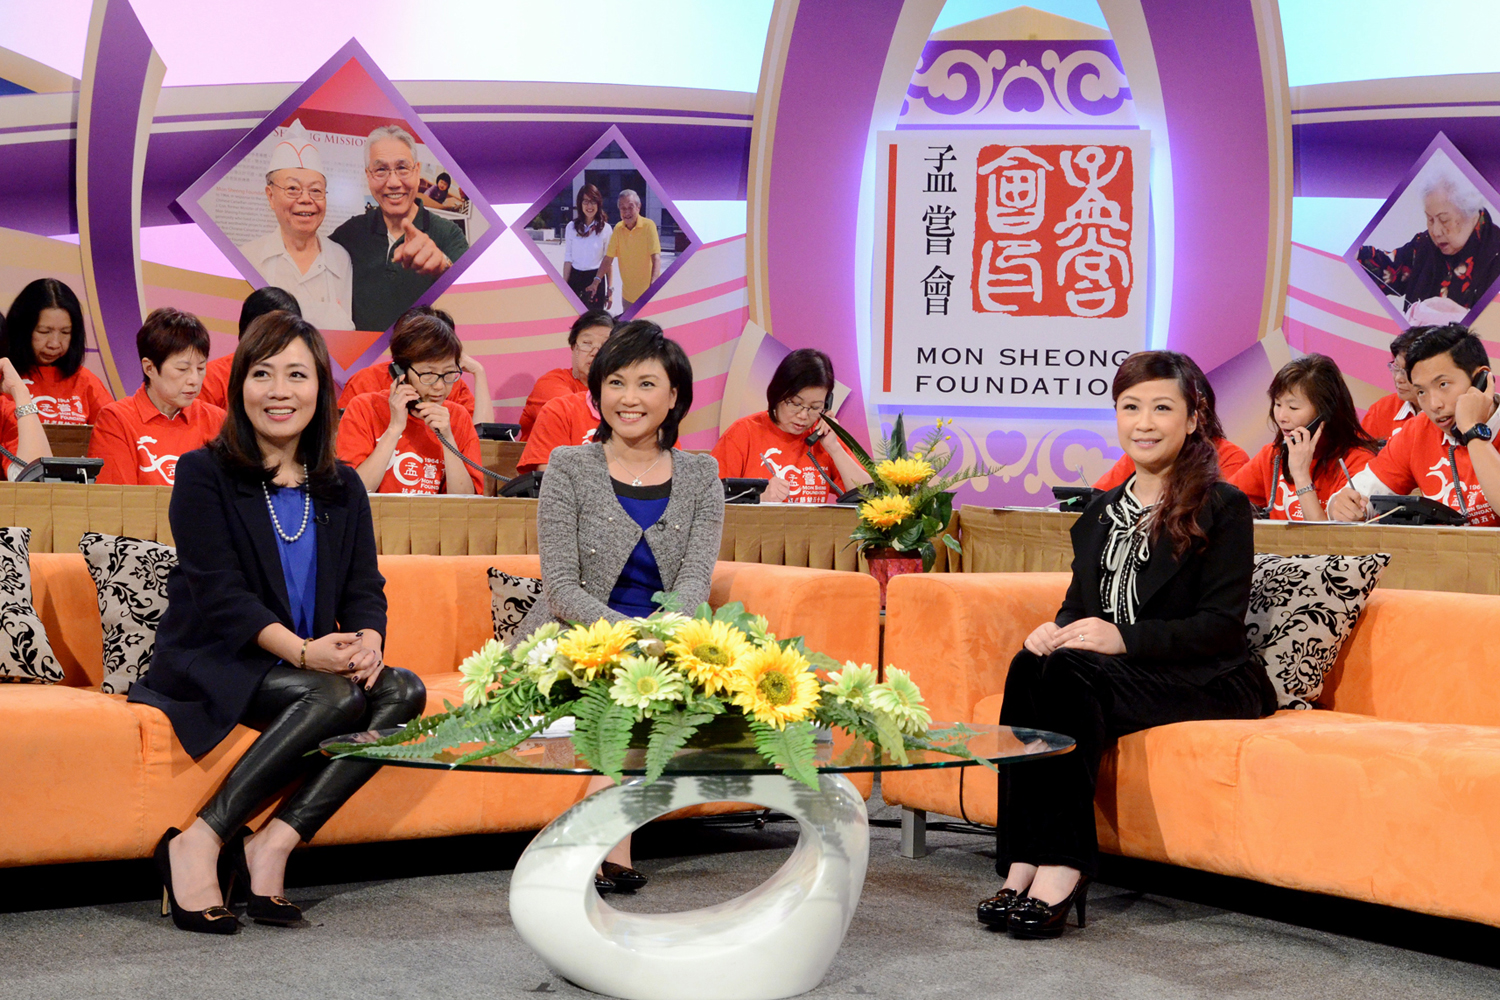 Mon Sheong Telethon on Fairchild TV